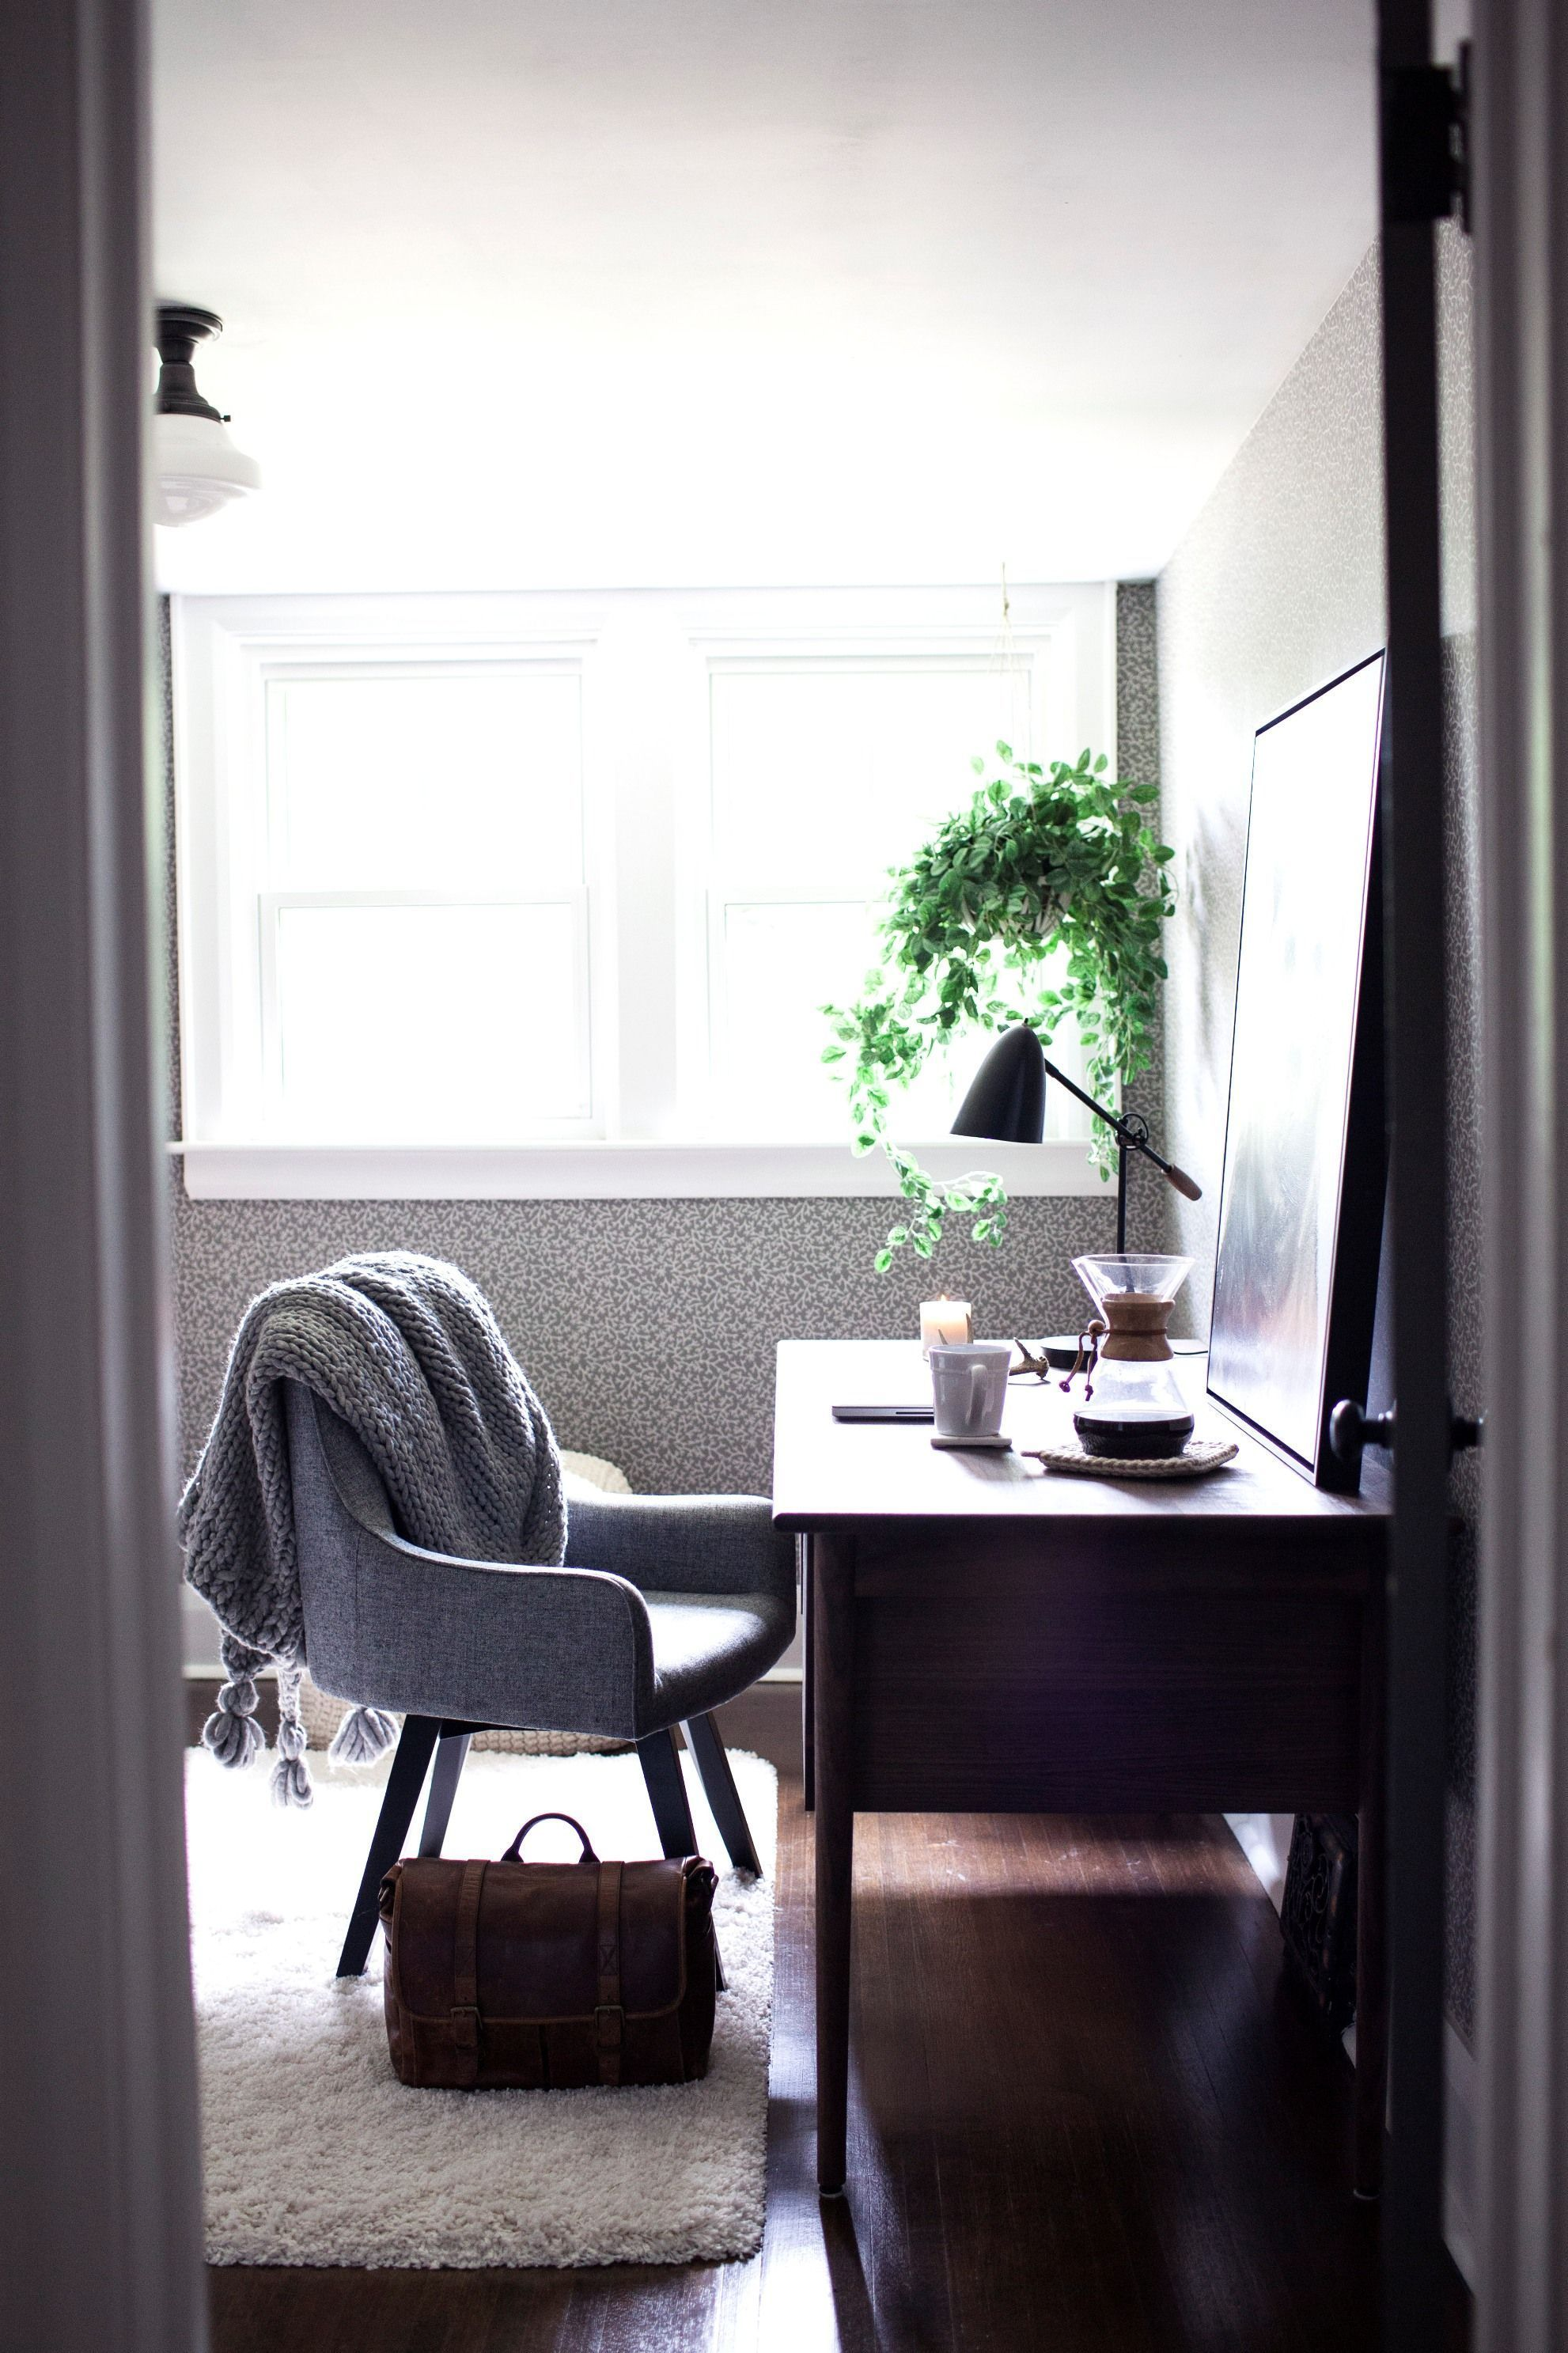 Desk under window ideas  hygge ideas for the home office  storage drawers desks and crates